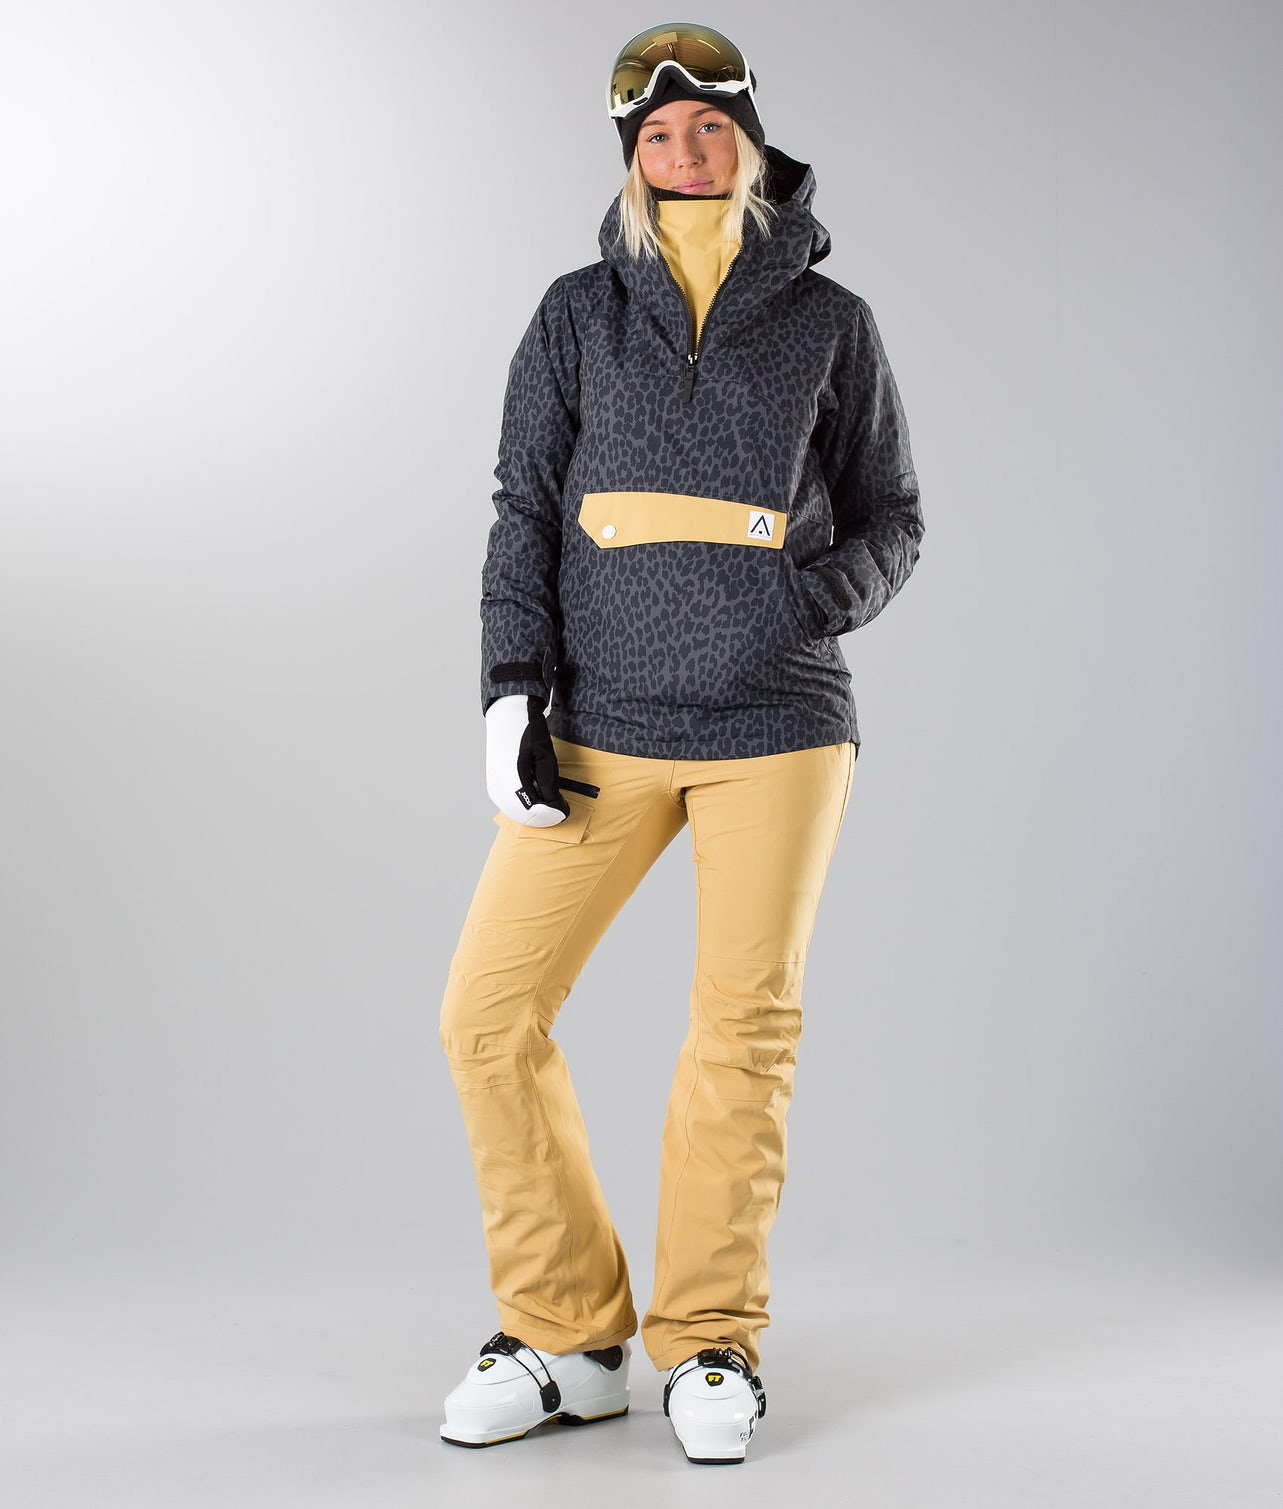 Buy Homage Ski Jacket from WearColour at Ridestore.com - Always free shipping, free returns and 30 days money back guarantee